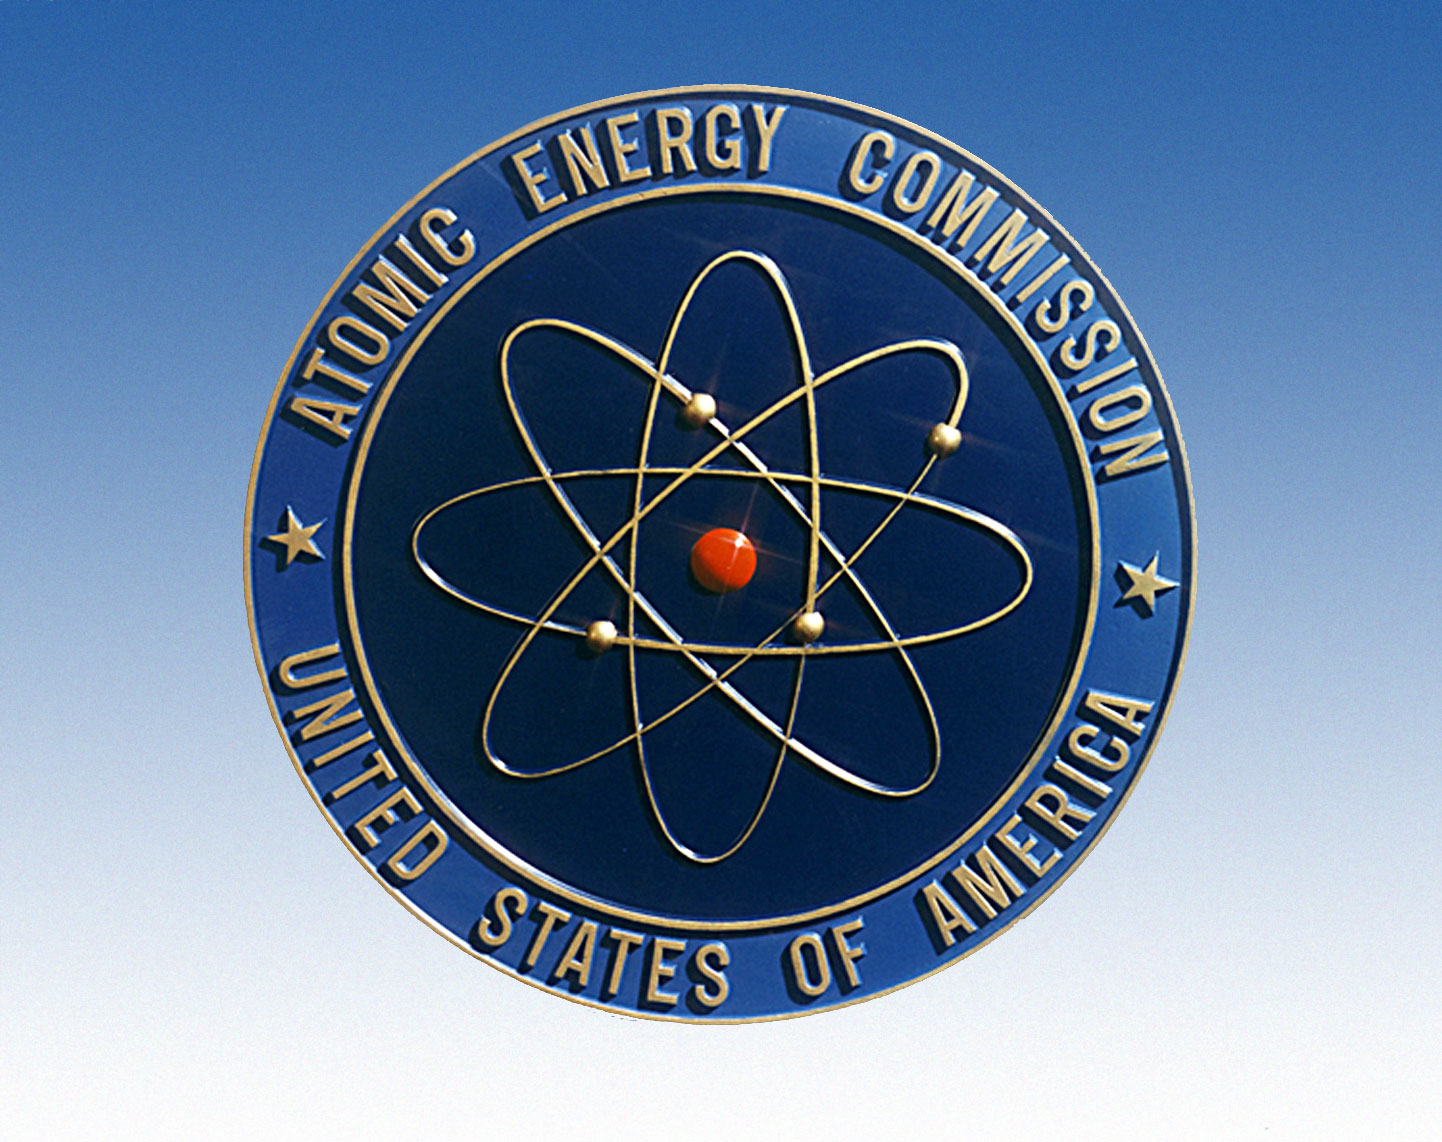 The Atomic Energy Commission Was A Civilian Arm Of The Federal Government Which Took Over Control Of The Development Of Atomic Power And Atomic Weapons From